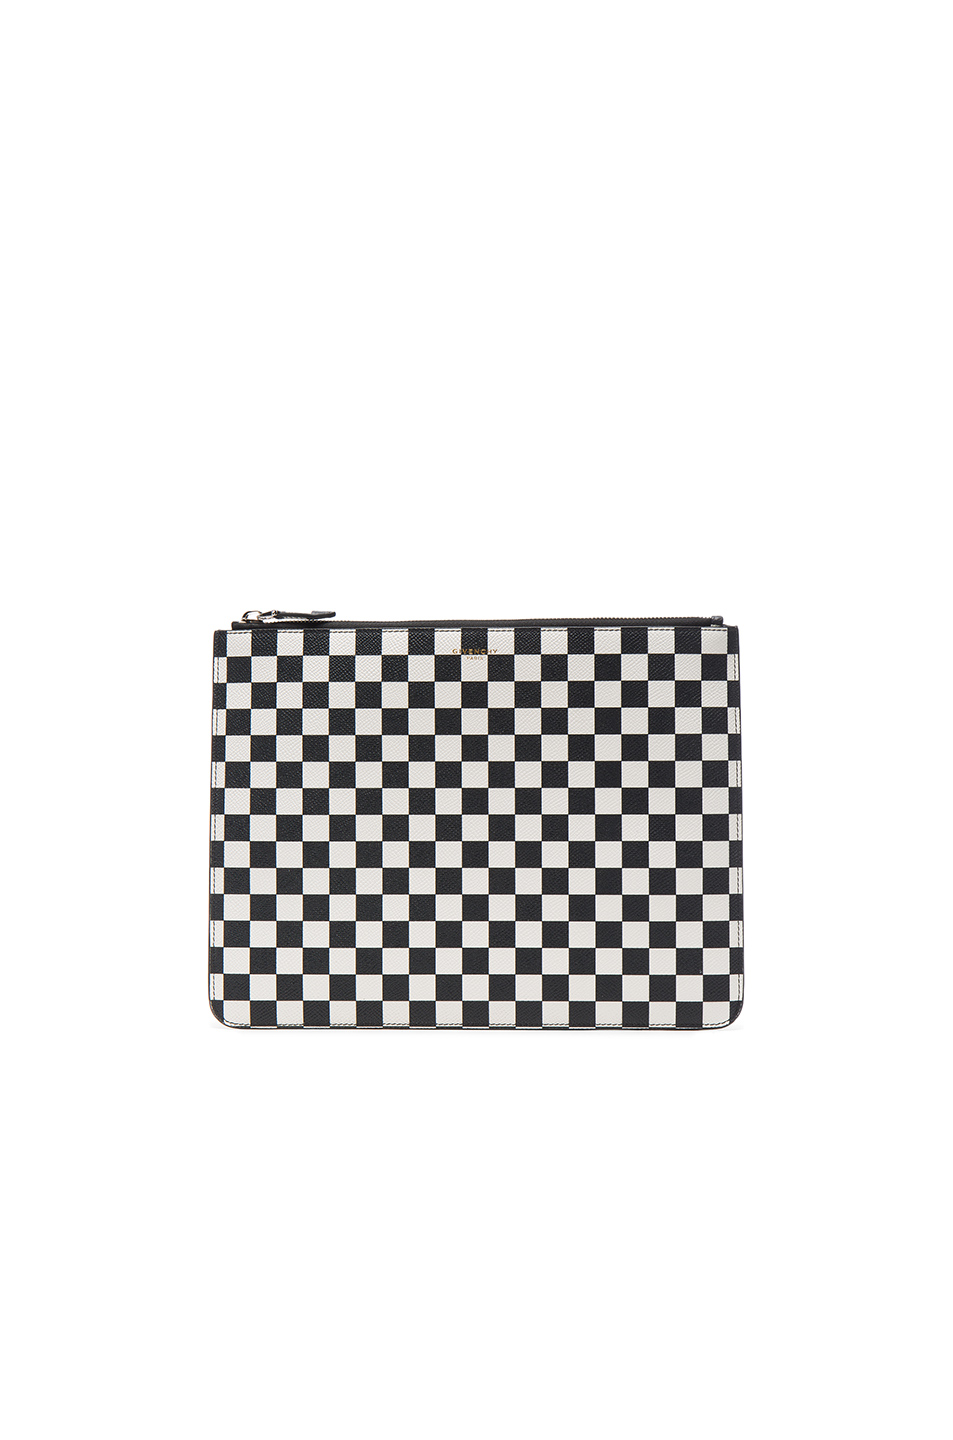 Givenchy Large Zip Pouch in Black,White,Checkered & Plaid